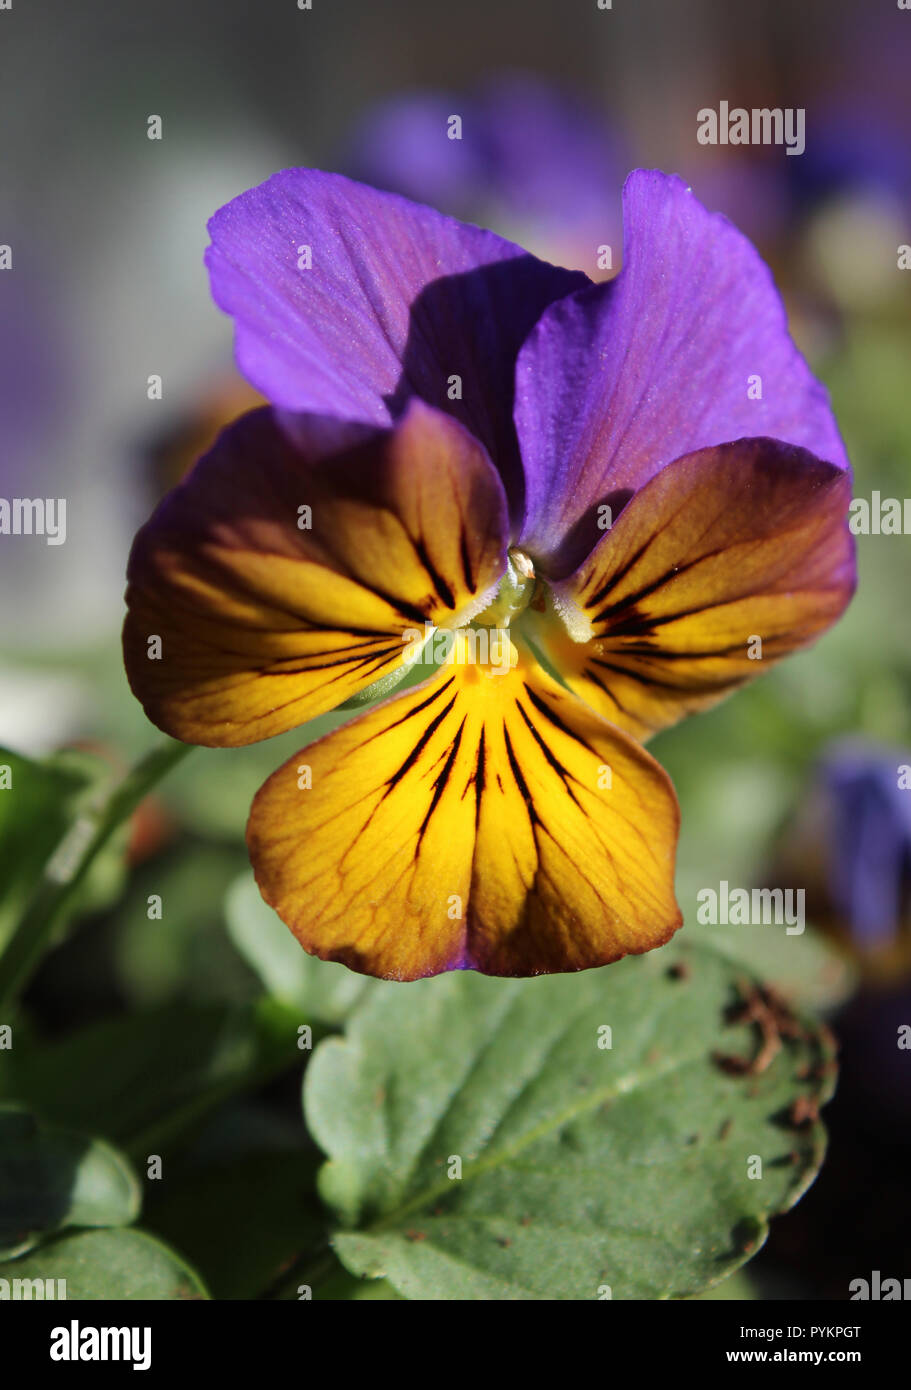 The beautiful yellow and purple flower head of the ornamental Viola plant, close up outdoors. - Stock Image